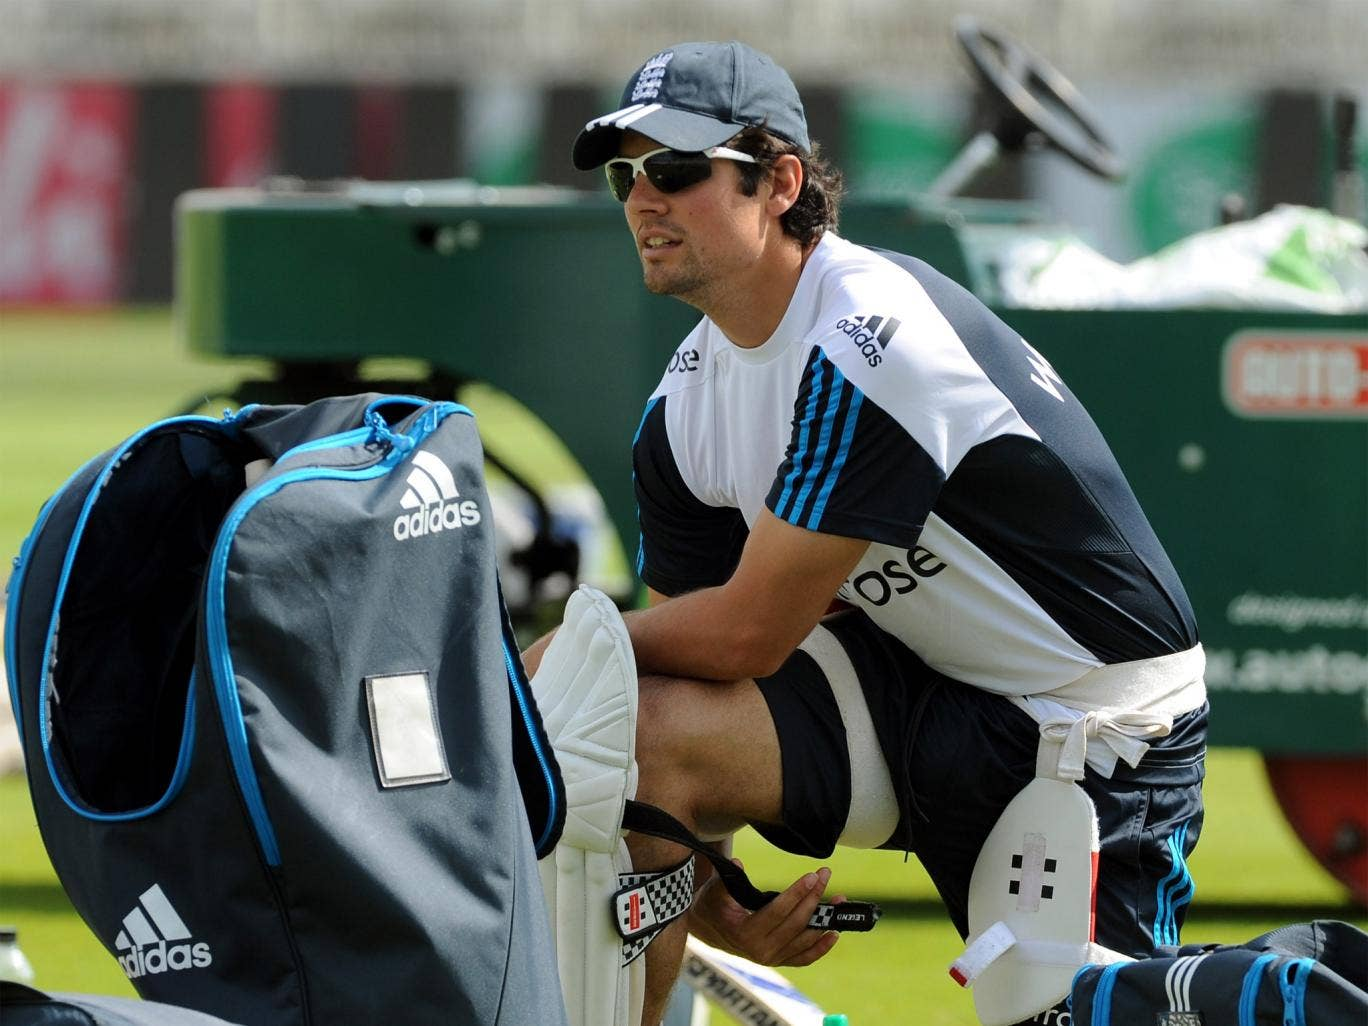 Alastair Cook prepares for a net session at Trent Bridge